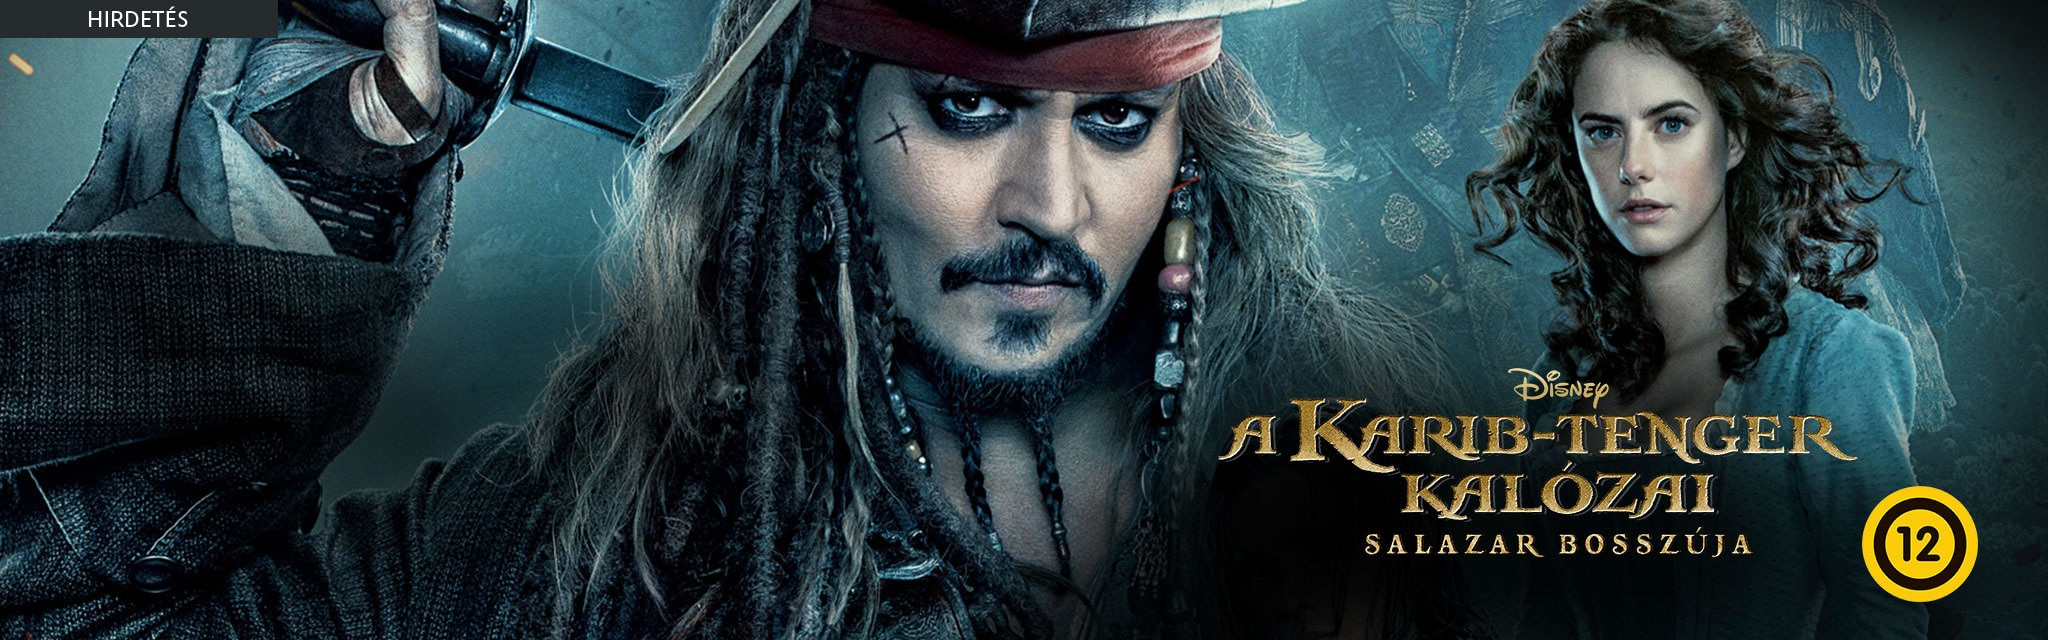 Pirates of the Caribbean 5 - Digital Download - FW Hero